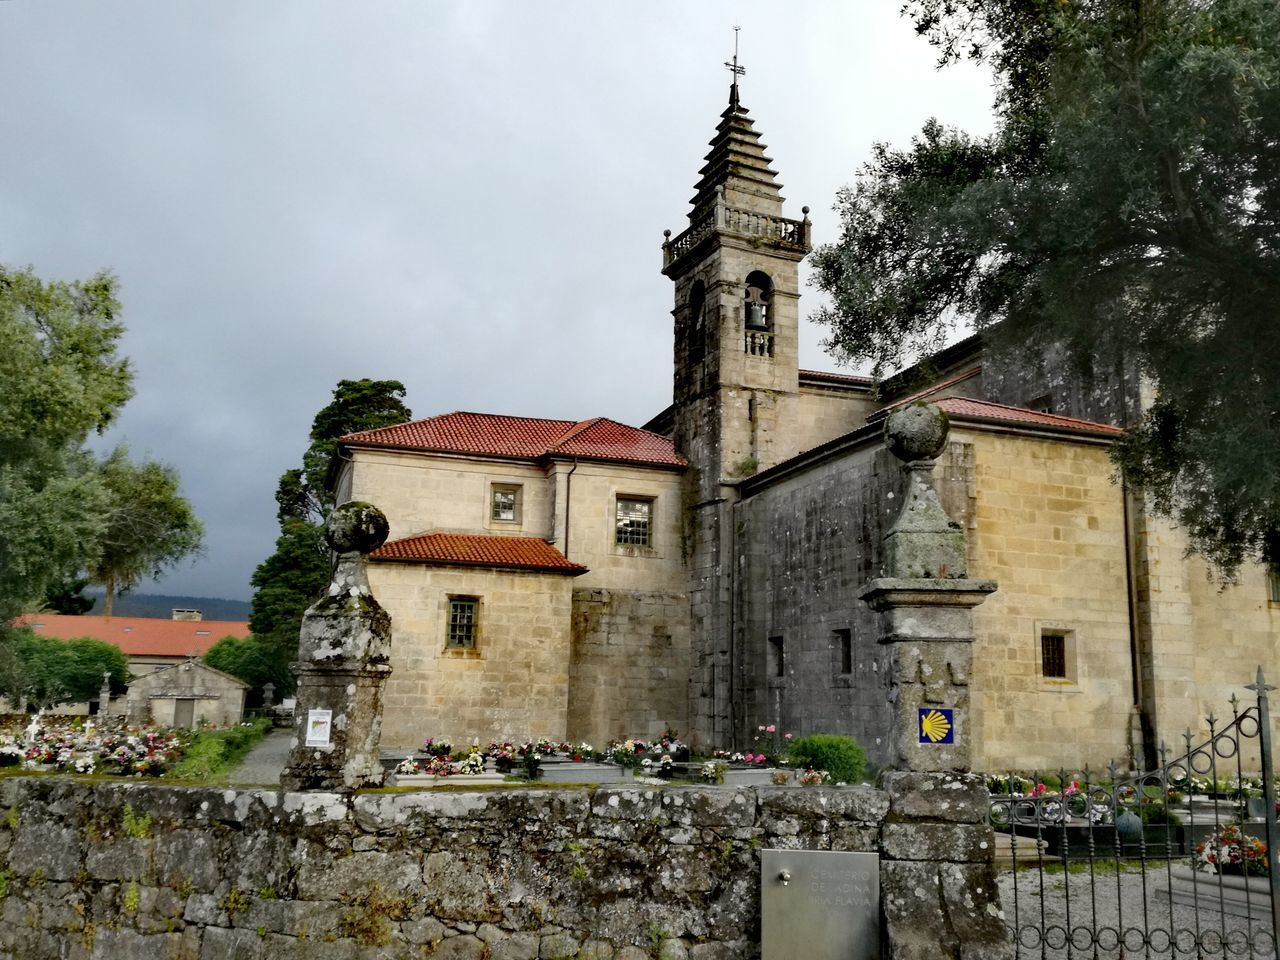 Architecture Religion History Building Exterior Built Structure Tree Outdoors No People Day Sky Clock Rain Clouds Saint James Way Place Of Woreship Rainy Day Walk Rainy Weather Rural Scene Spain_beautiful_landscapes Galicia, Spain Spain Is Beautiful Church Architecture Catholic Church